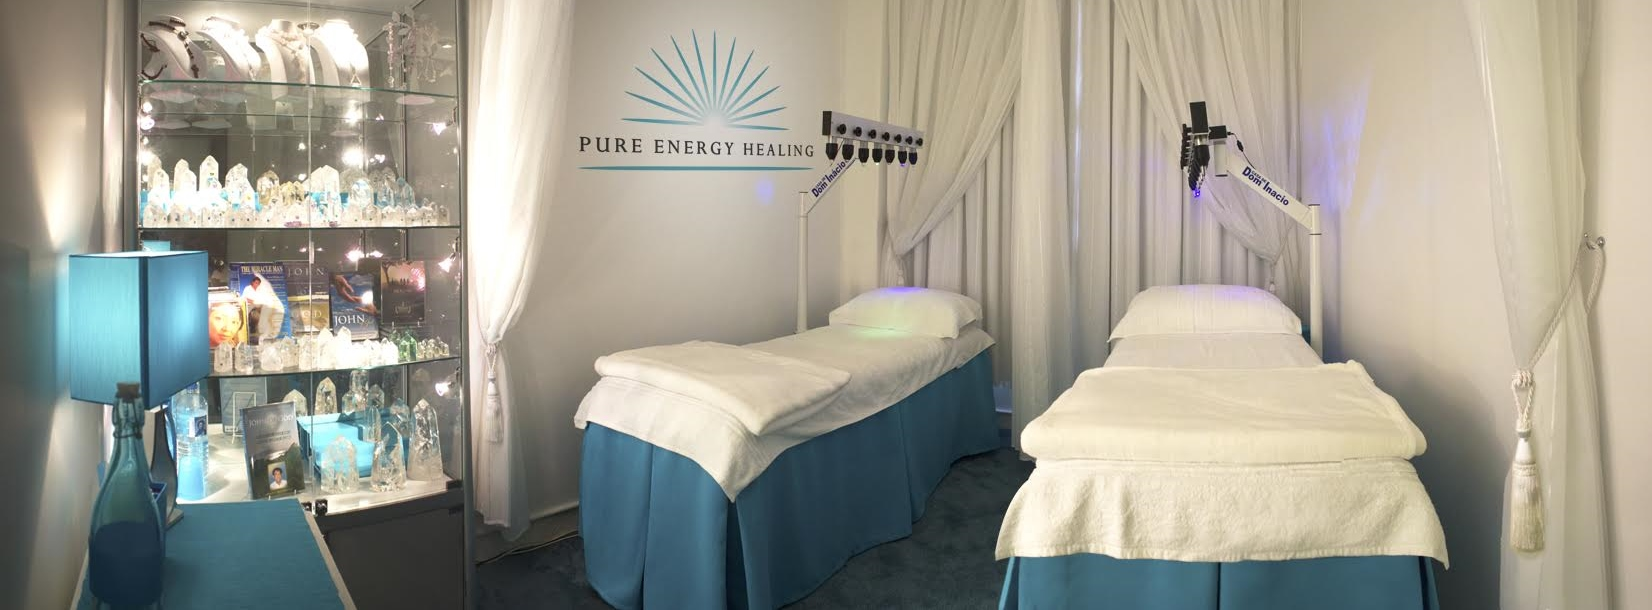 pure-energy-healing-sydney-clinic-sherril-page